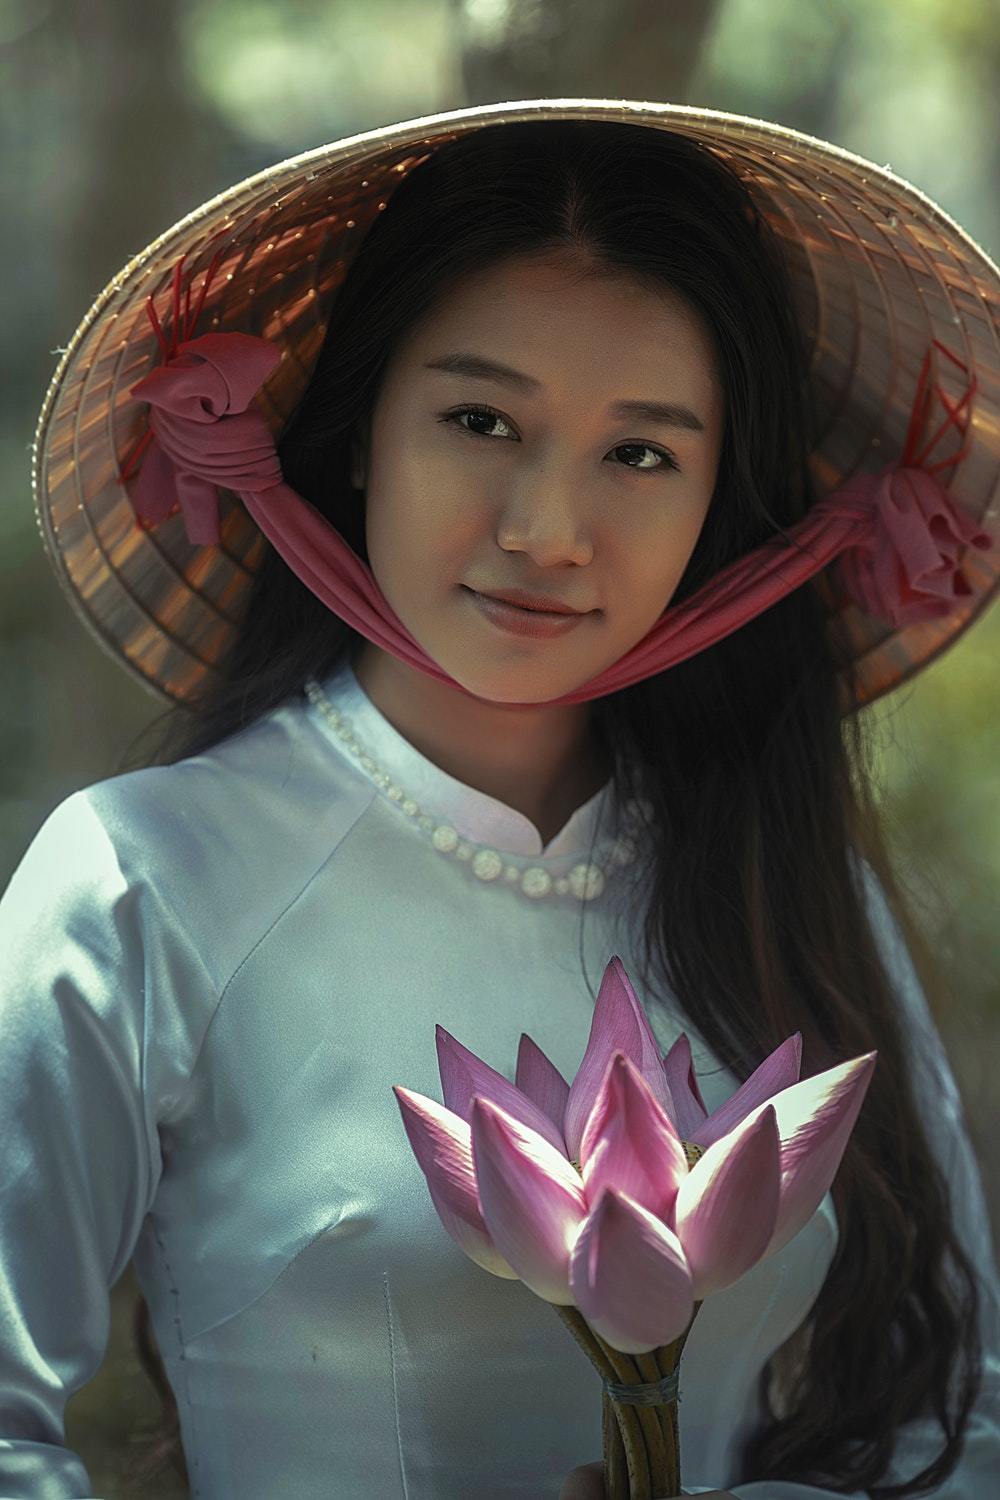 woman wearing white long-sleeved dress and brown sungat holding pink petaled flower